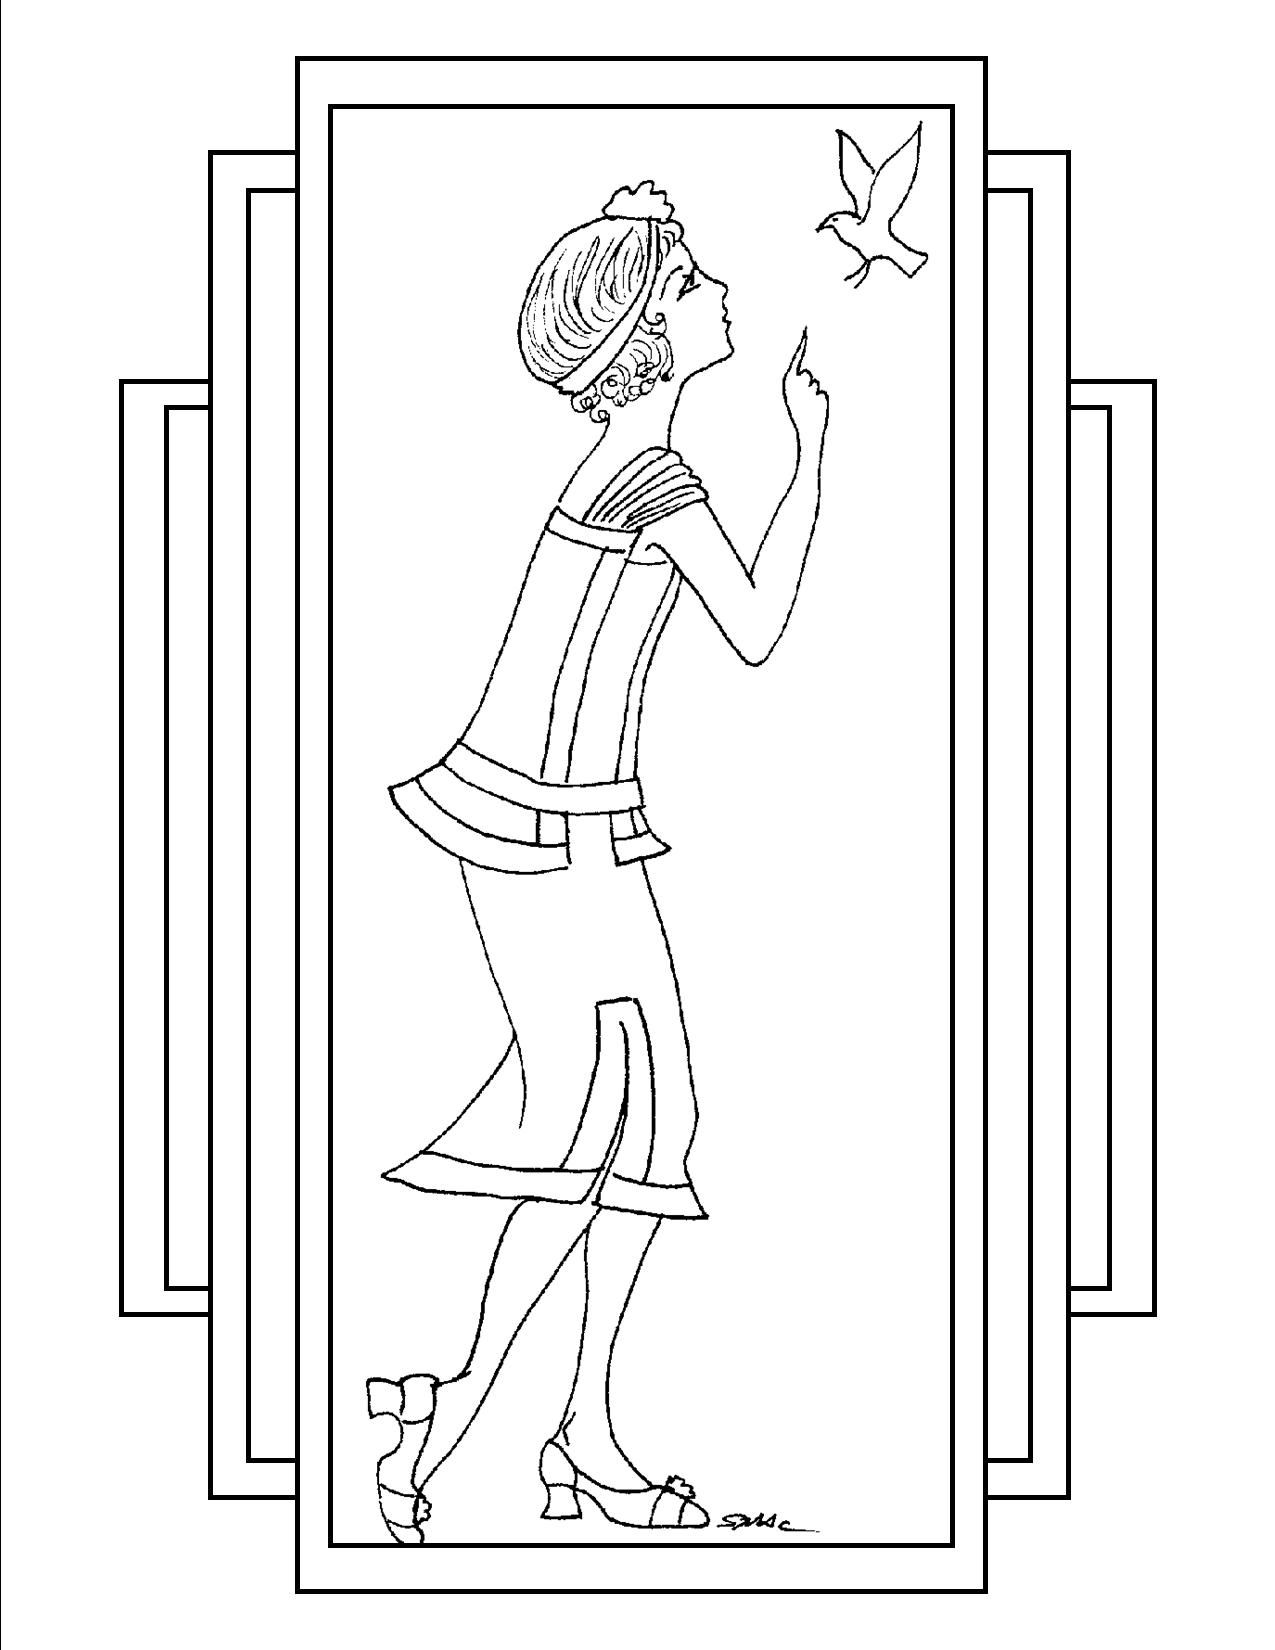 S.Mac\'s Art Deco Coloring Page, Deco Gal with Bird | Coloring fun ...